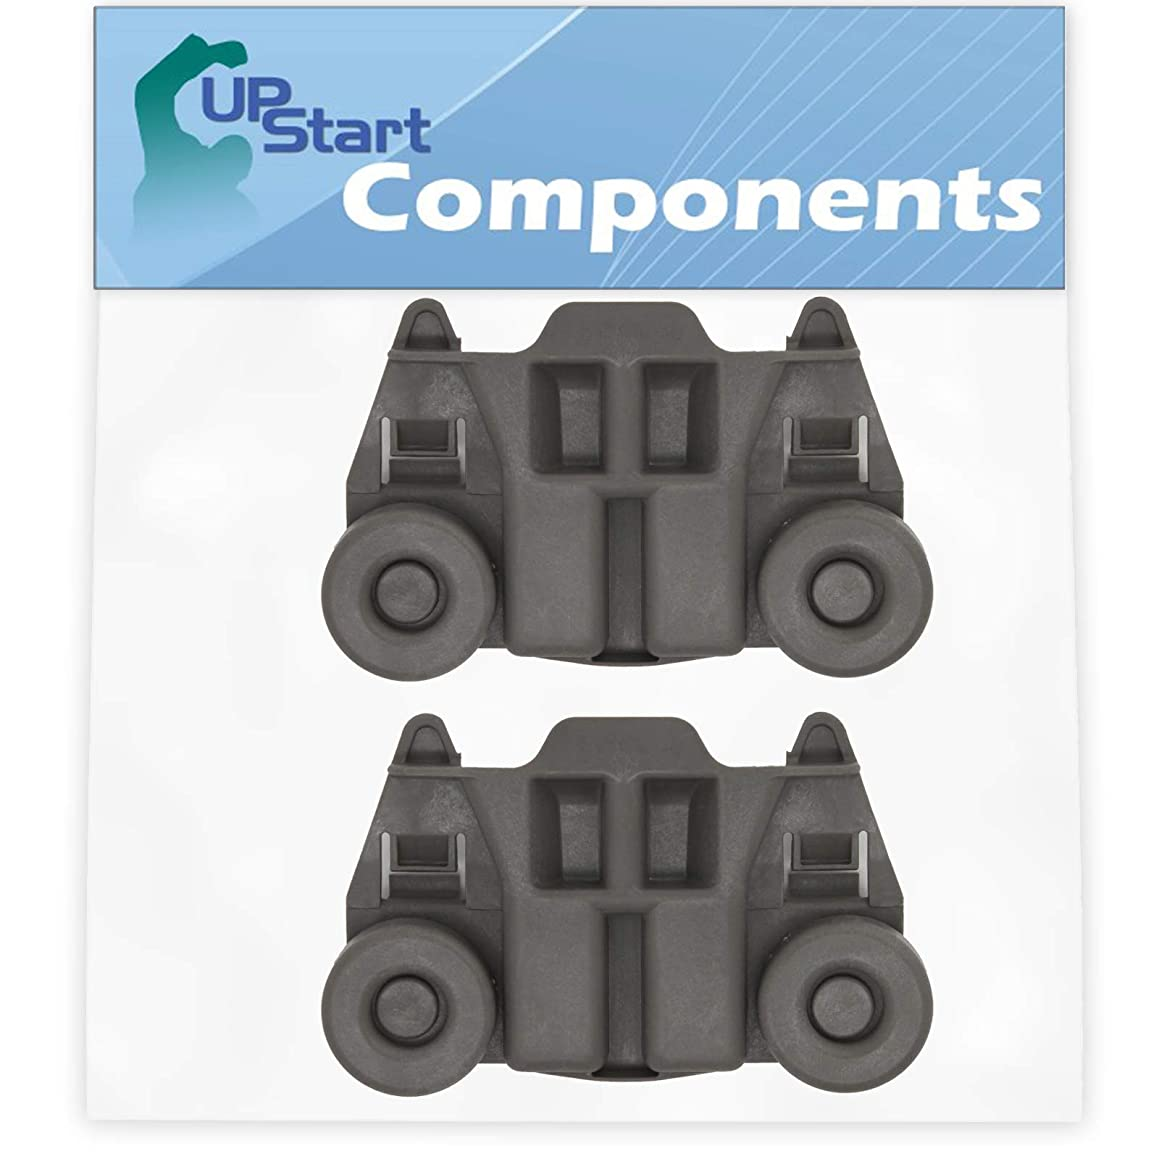 2-Pack W10195417 Dishwasher Wheel Replacement for Kenmore/Sears 66513973K013 Dishwasher - Compatible with WPW10195417 Dishwasher Rack Roller - UpStart Components Brand